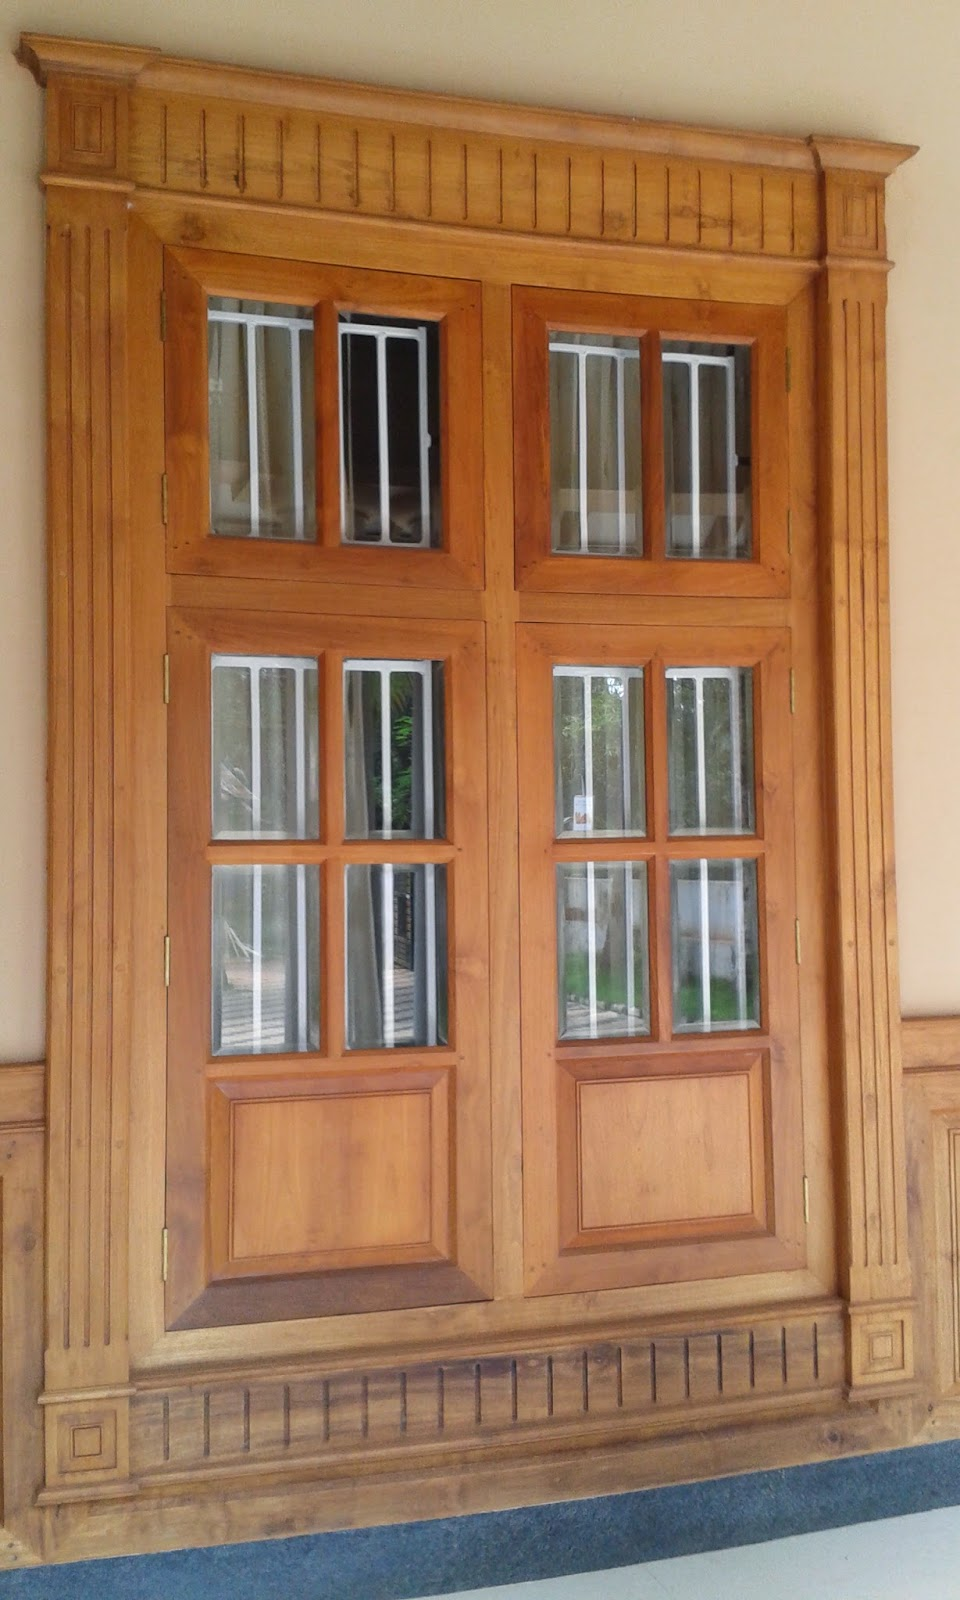 Kerala style carpenter works and designs may 2015 for Window design for house in india